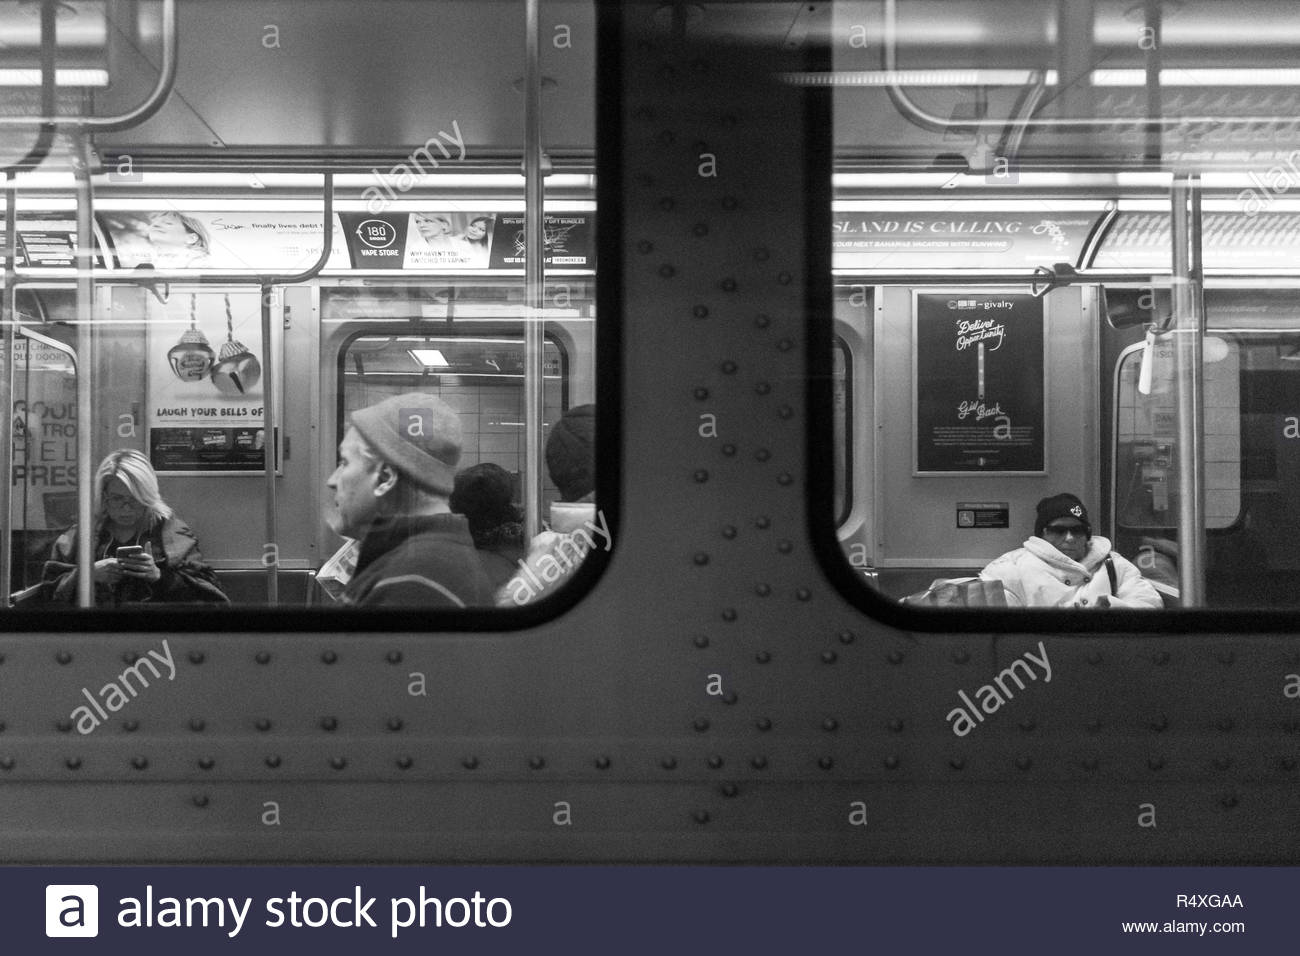 Toronto, Ontario, Canada-November 27, 2018: A view through the windows of a subway train. Everyday lifestyle of real city people as they commute in th Stock Photo